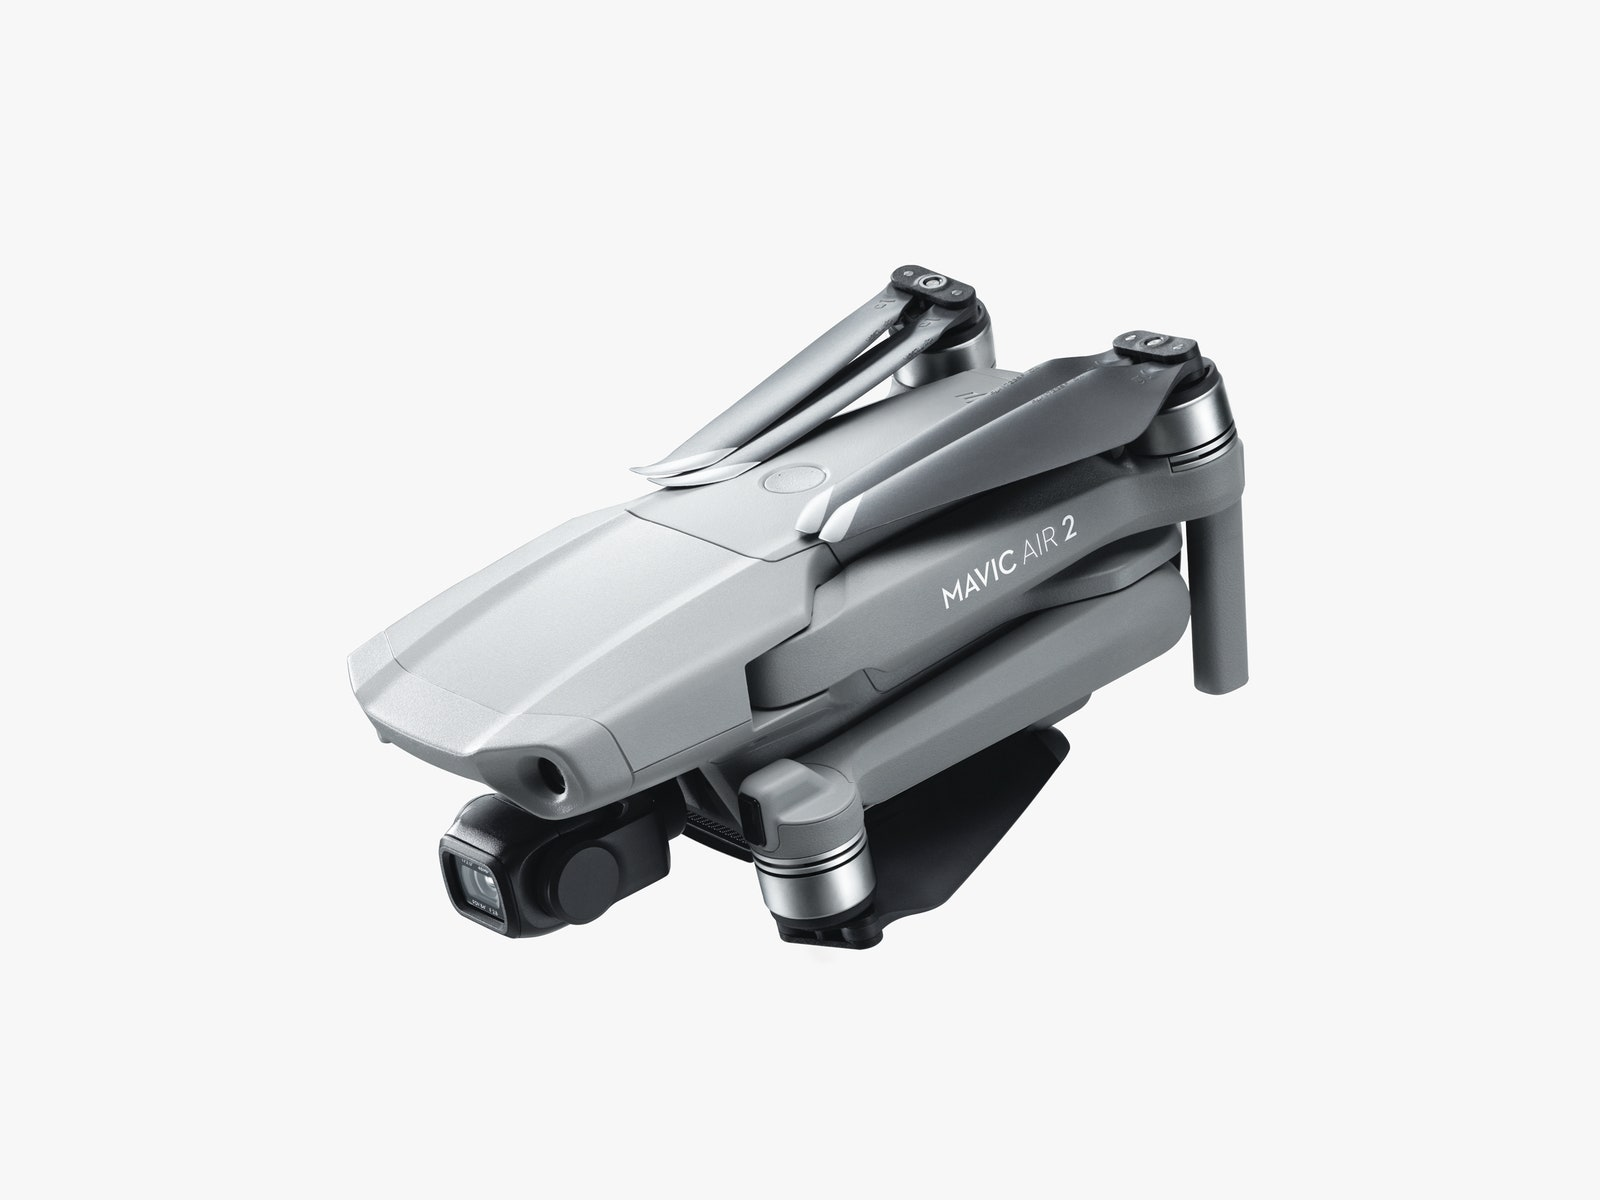 DJI Mavic Air 2 Review: The Best Drone for Taking Photos and Videos